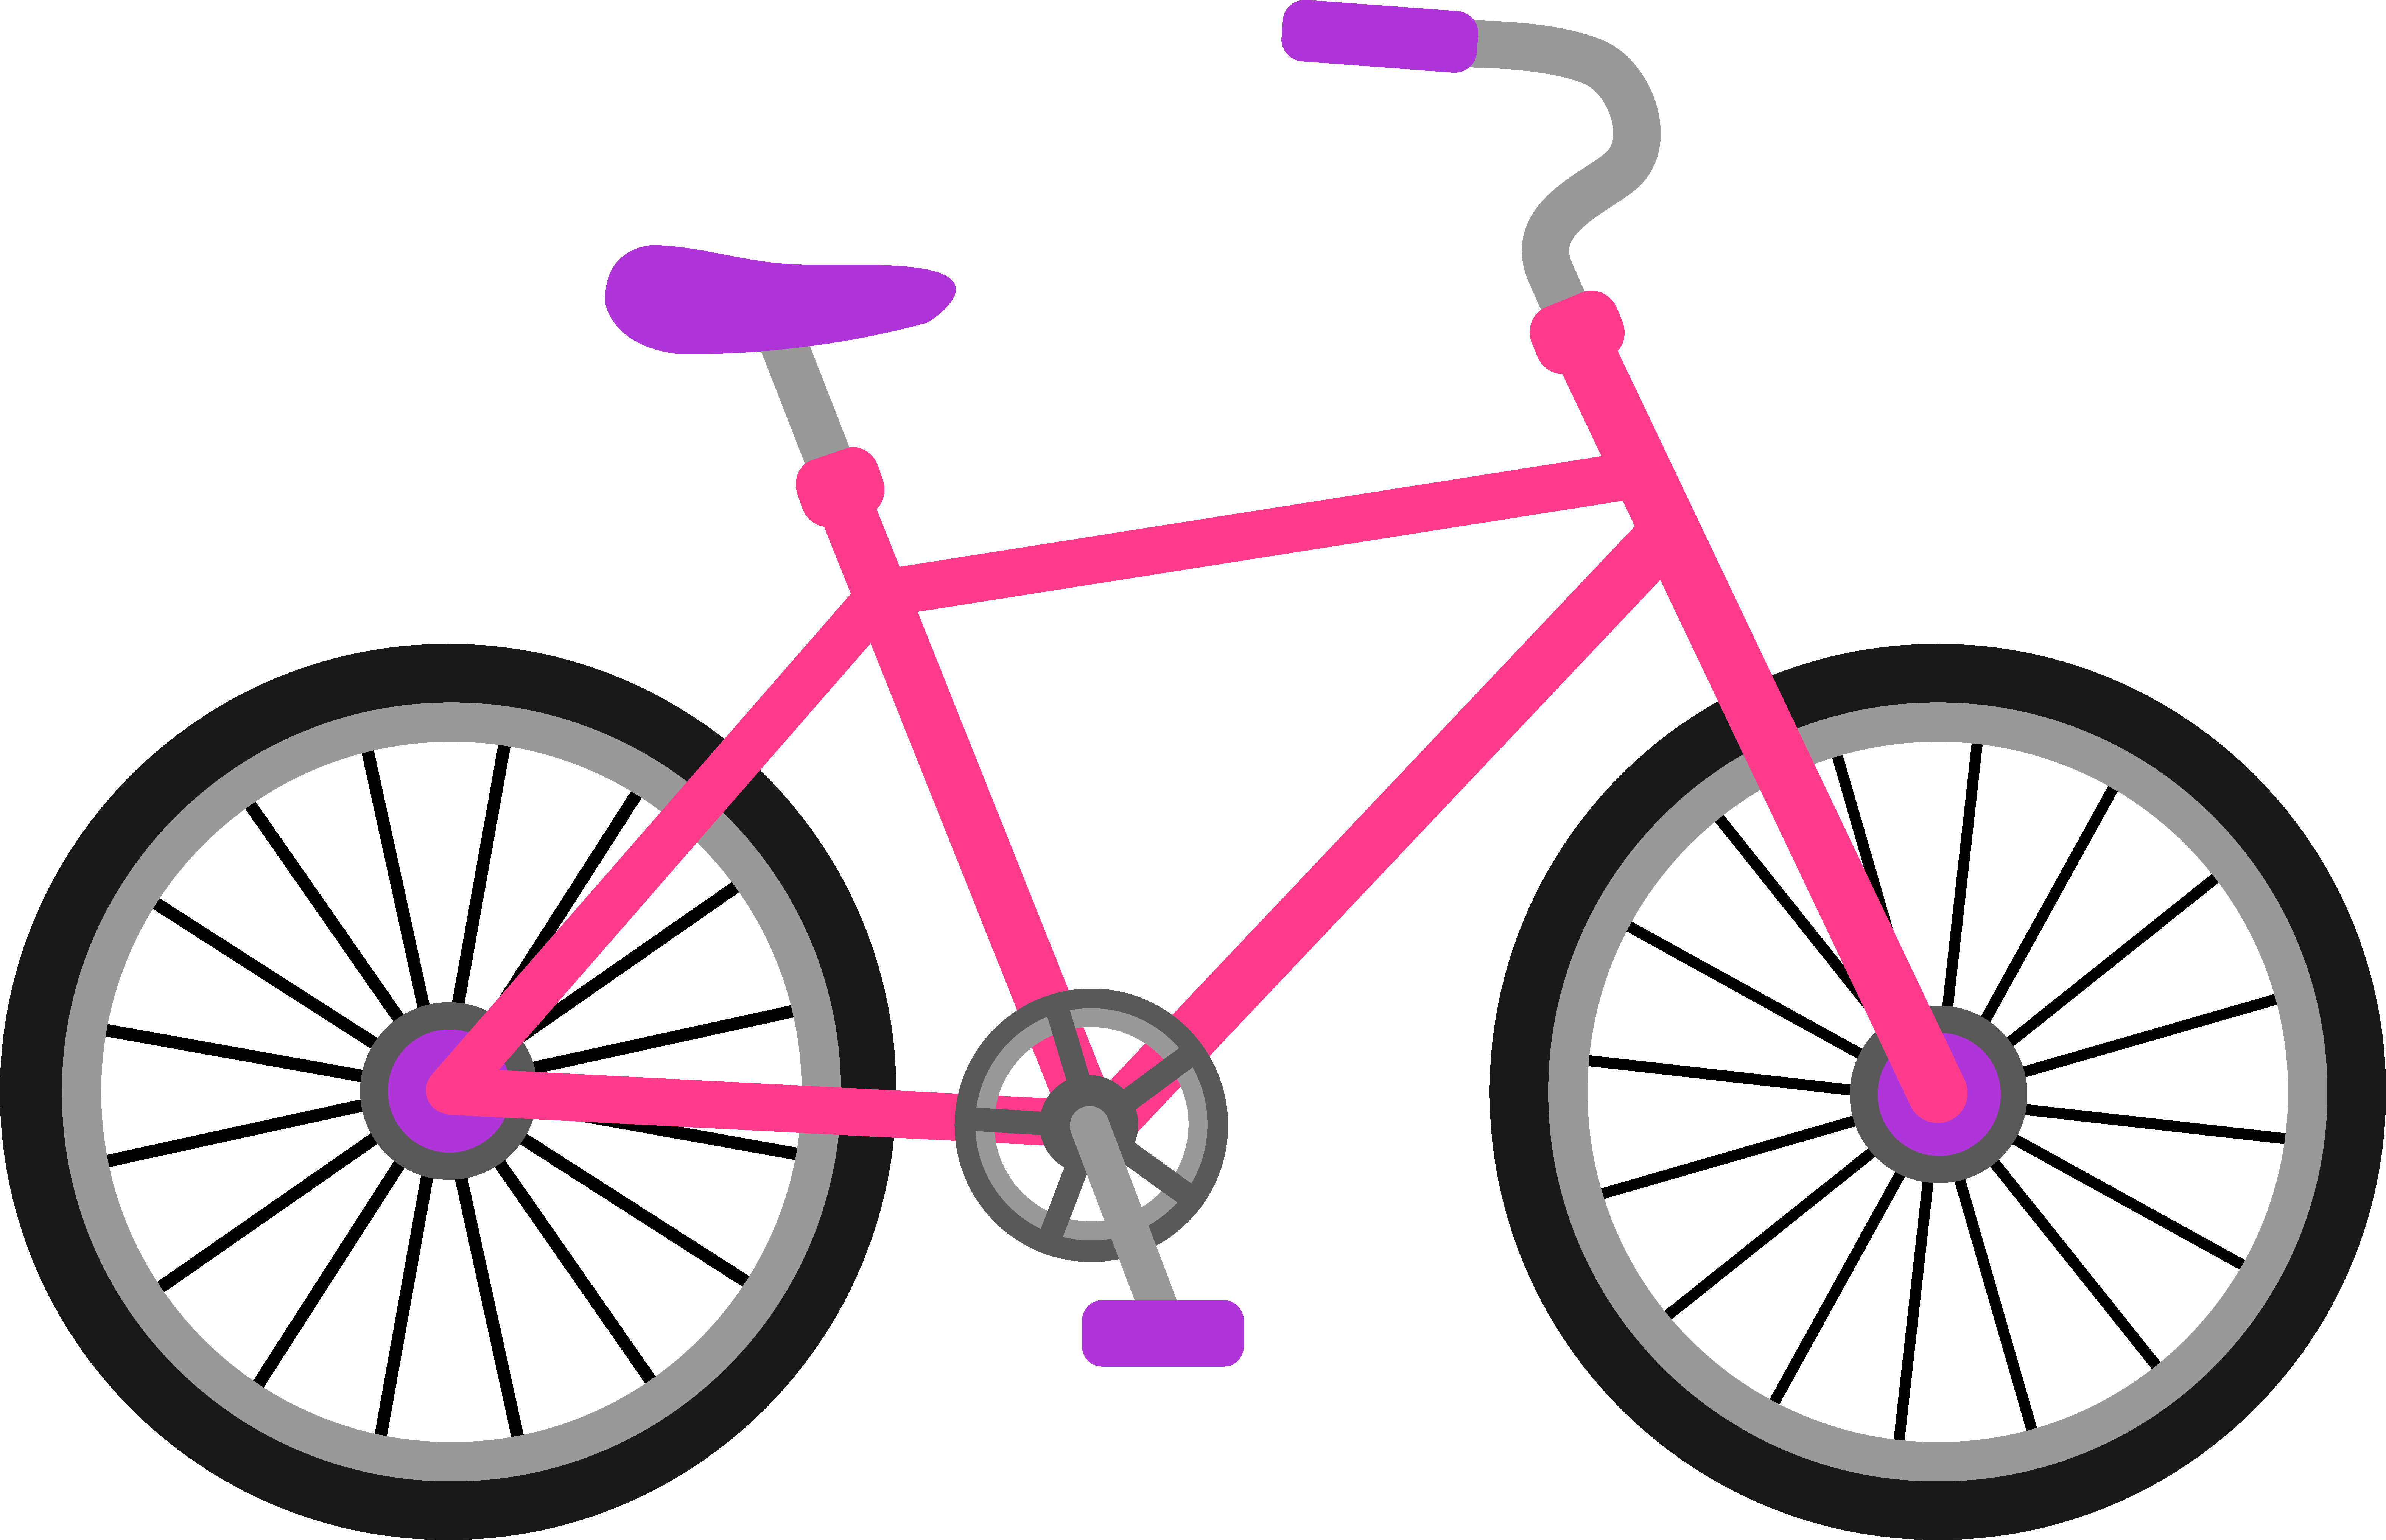 Cycle clipart. Girl on bicycle